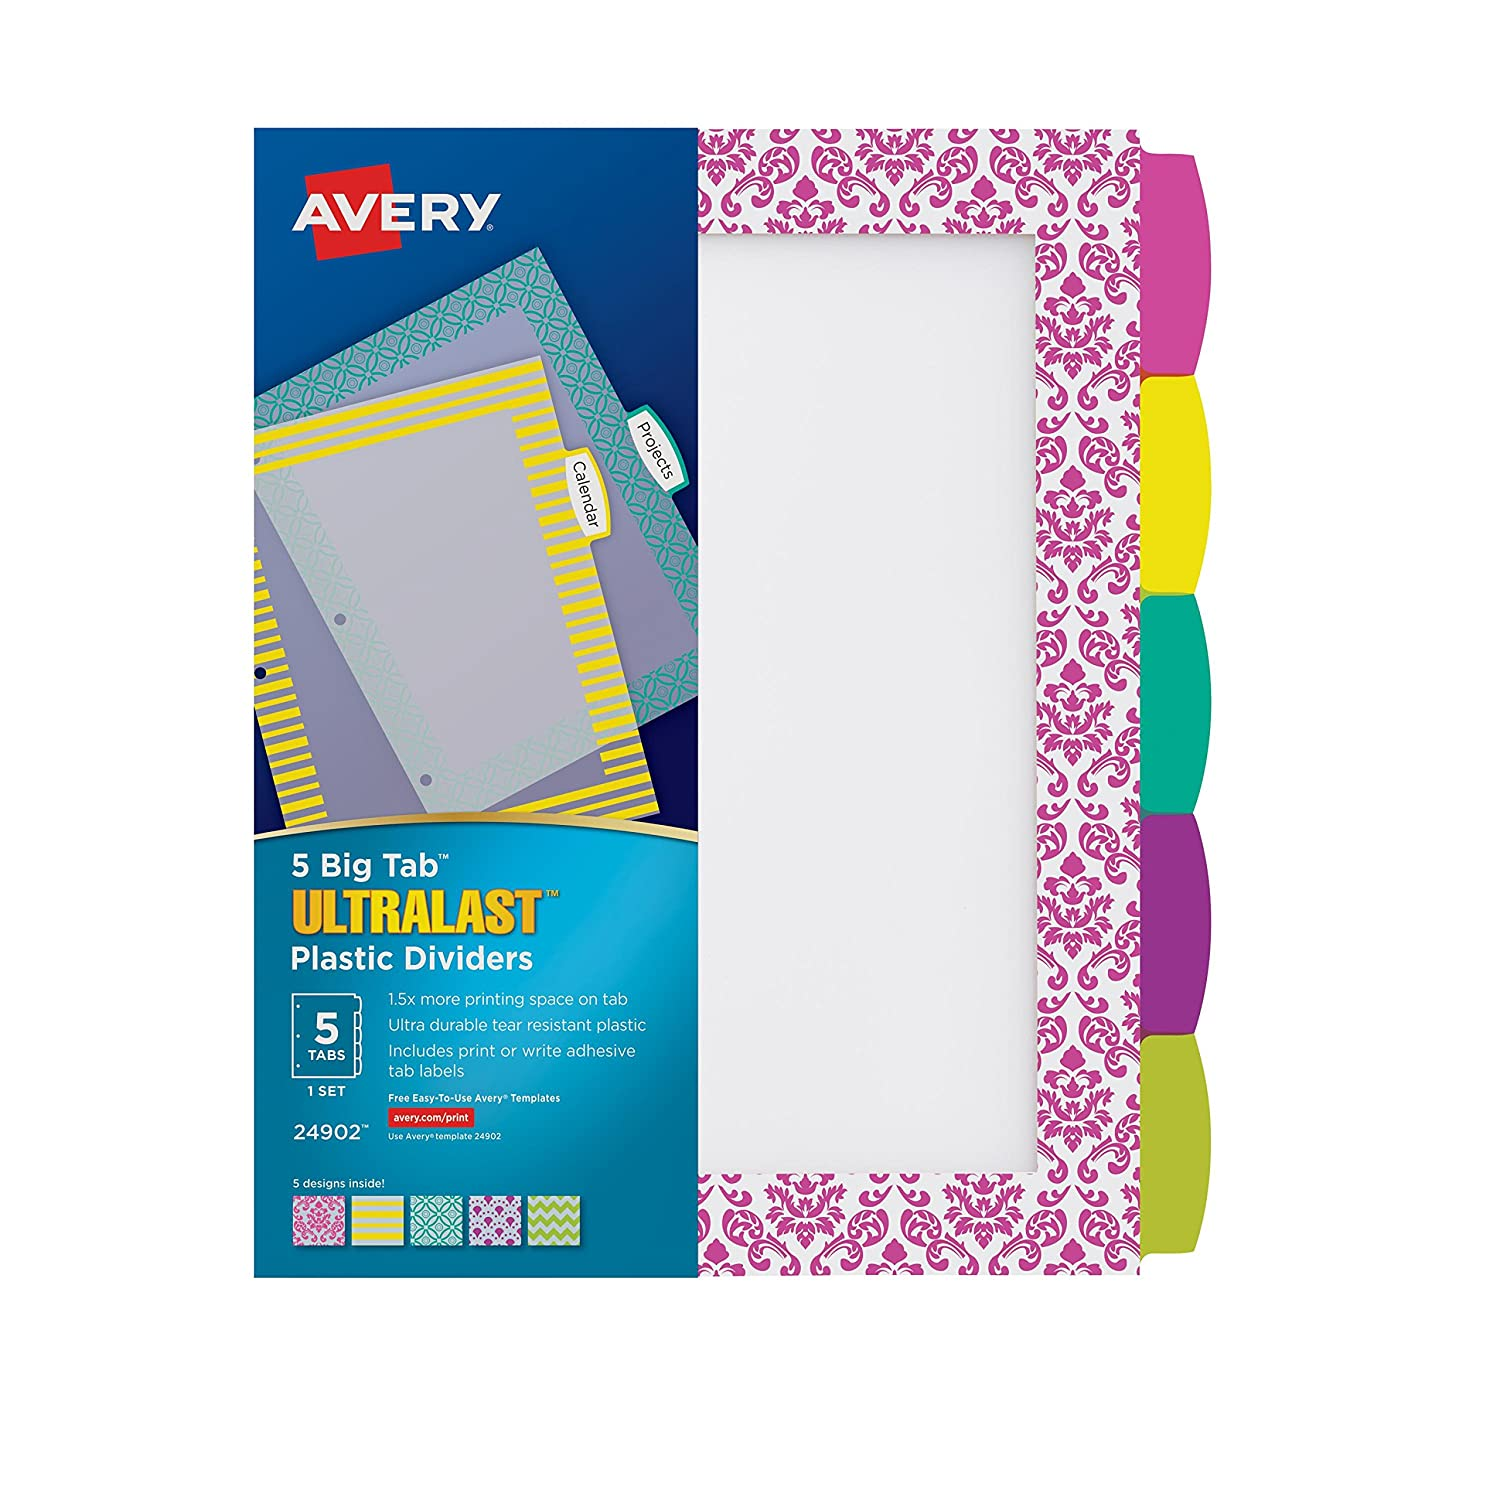 amazoncom avery ultralast big tab plastic dividers 5 tabs 1 set assorted designs 24902 office products